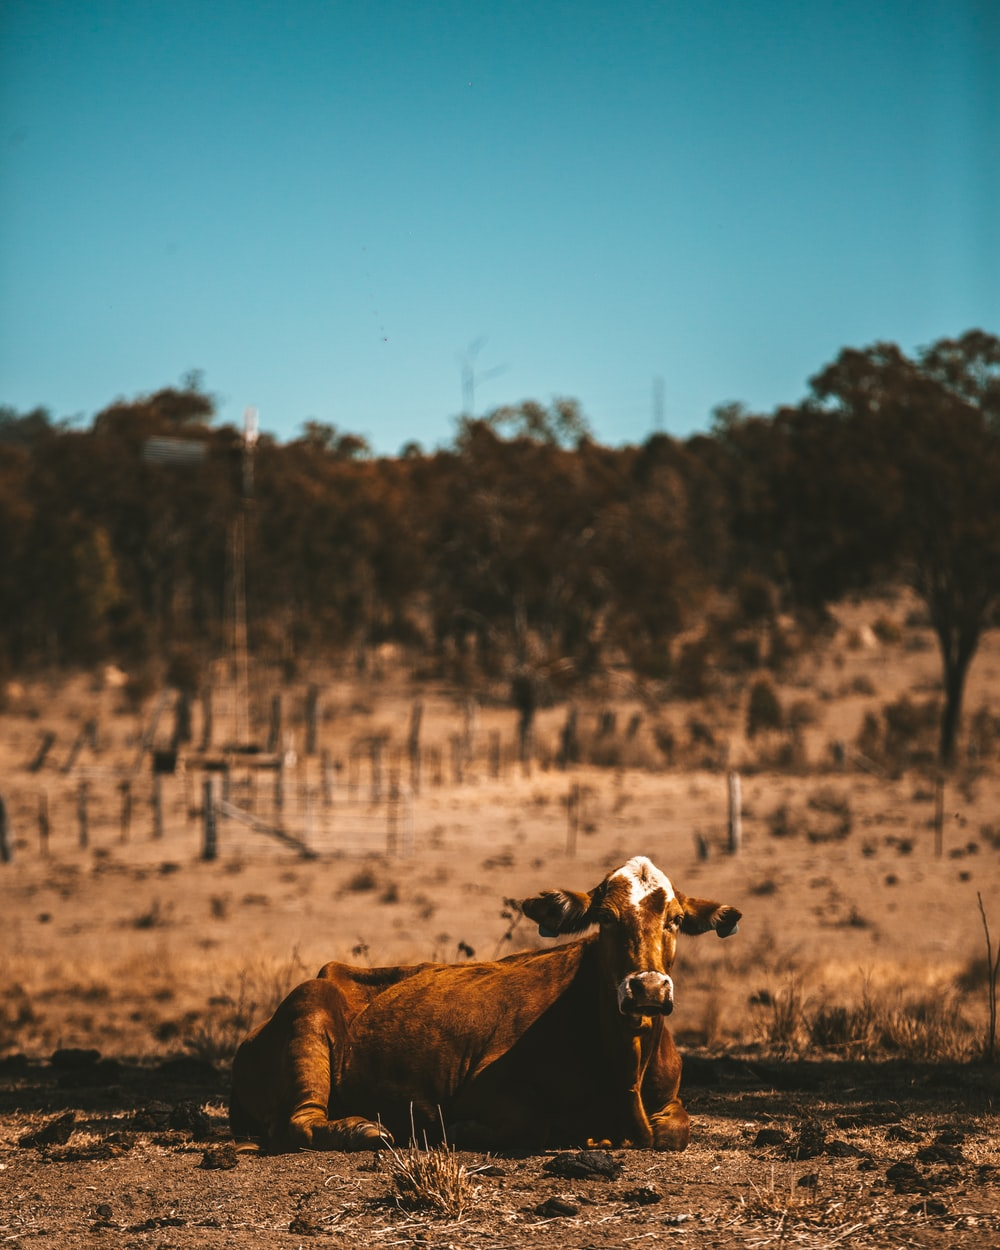 brown cattle lying on brown ground during daytime